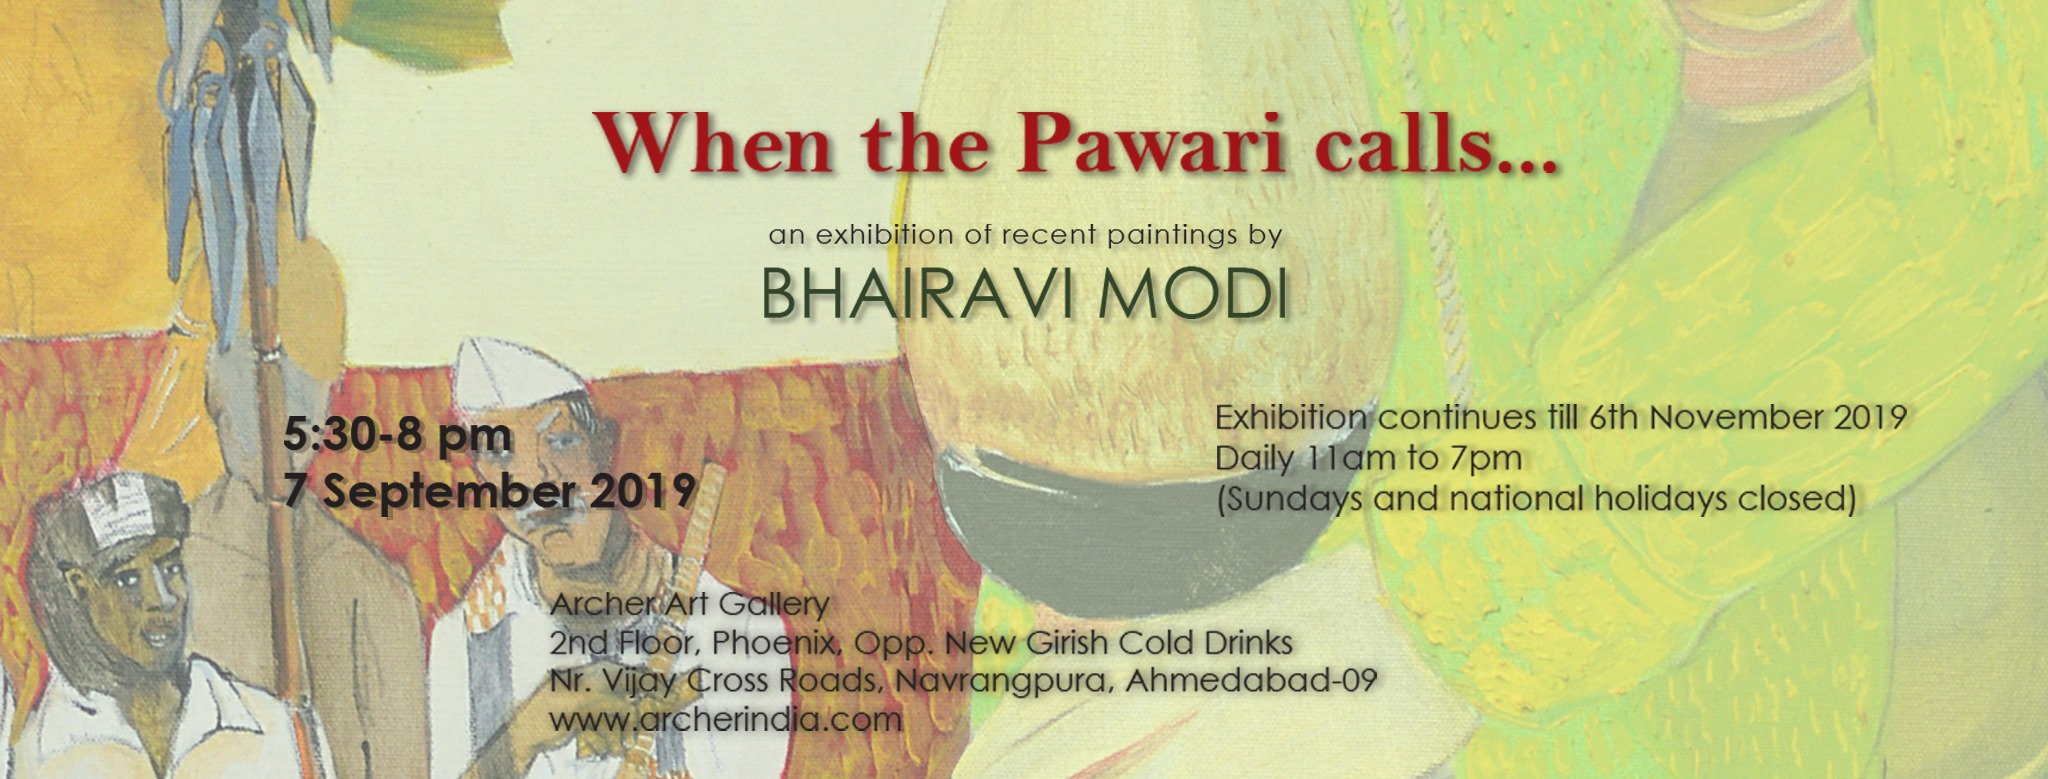 https://creativeyatra.com/wp-content/uploads/2019/09/When-the-Pawari-Calls-Display-of-paintings-by-Bhairavi-Modi.jpg